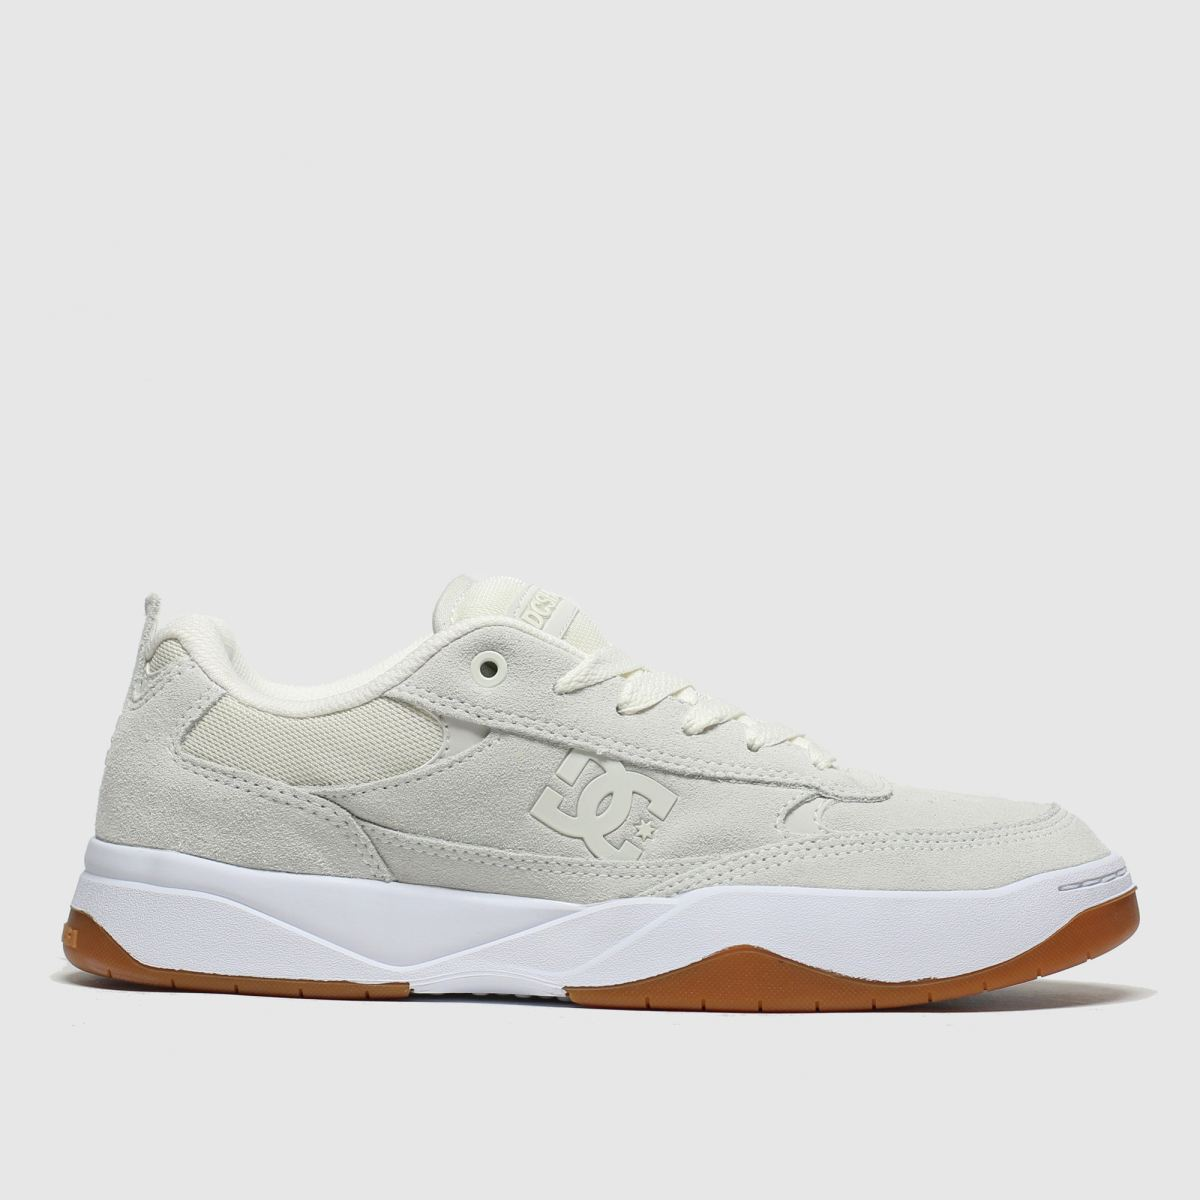 dc shoes Dc Shoes White Penza Trainers